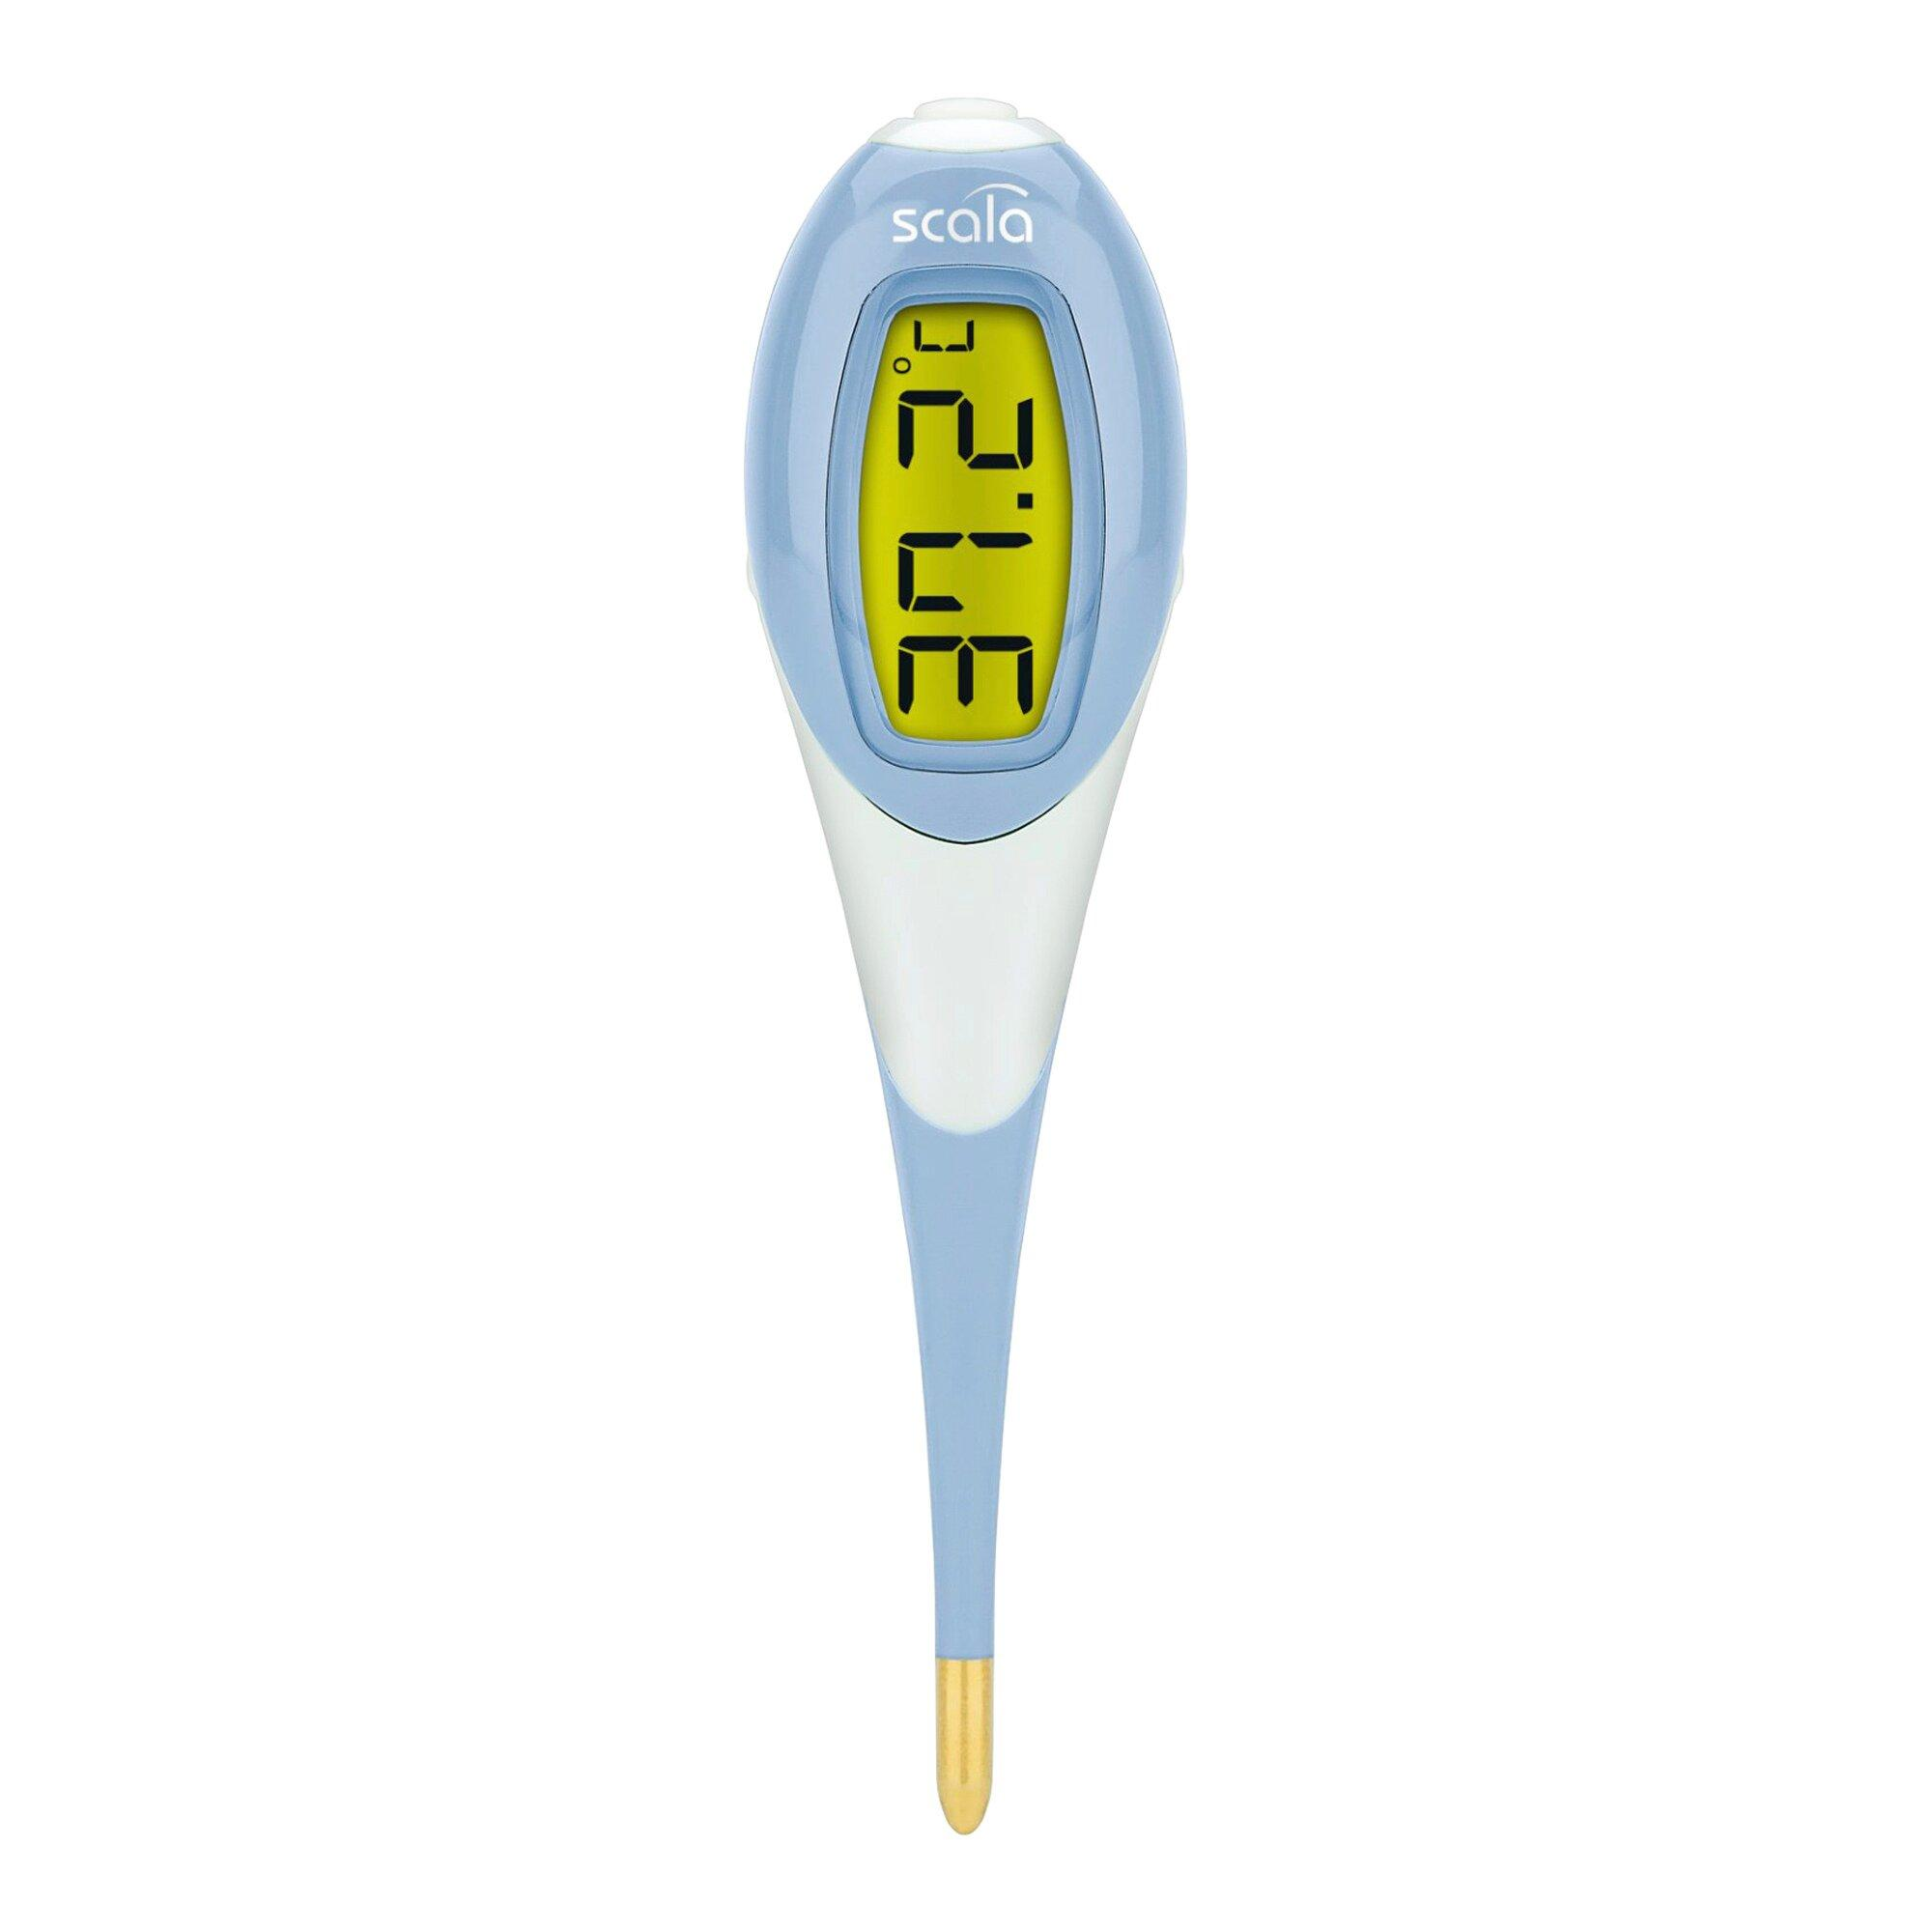 Digitales Fieberthermometer